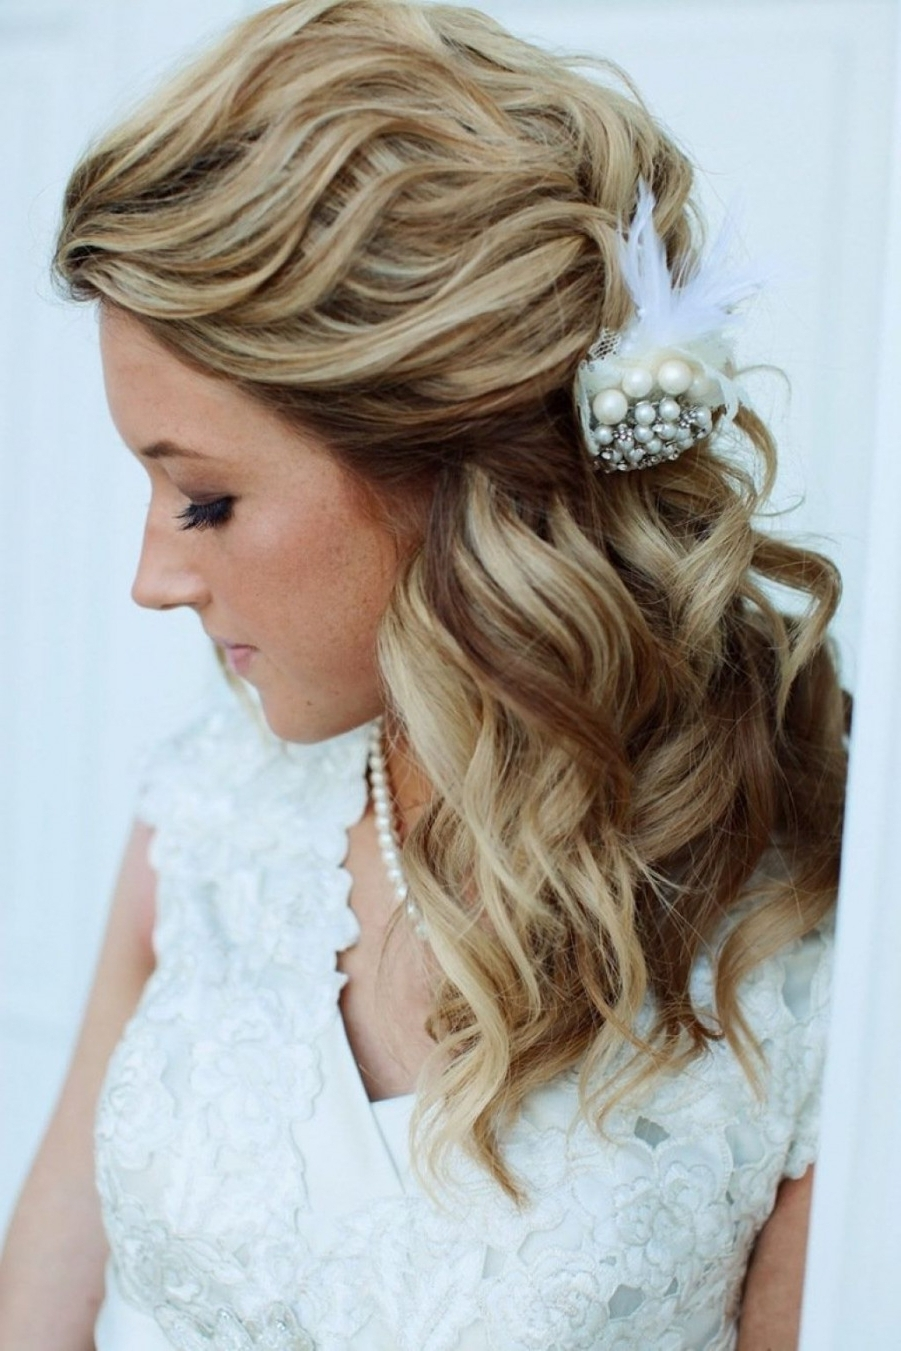 Most Up To Date Wedding Hairstyles For Medium Length Hair With Bangs In √ 24+ Awesome Wedding Hairstyles For Shoulder Length Hair: Cute (View 7 of 15)